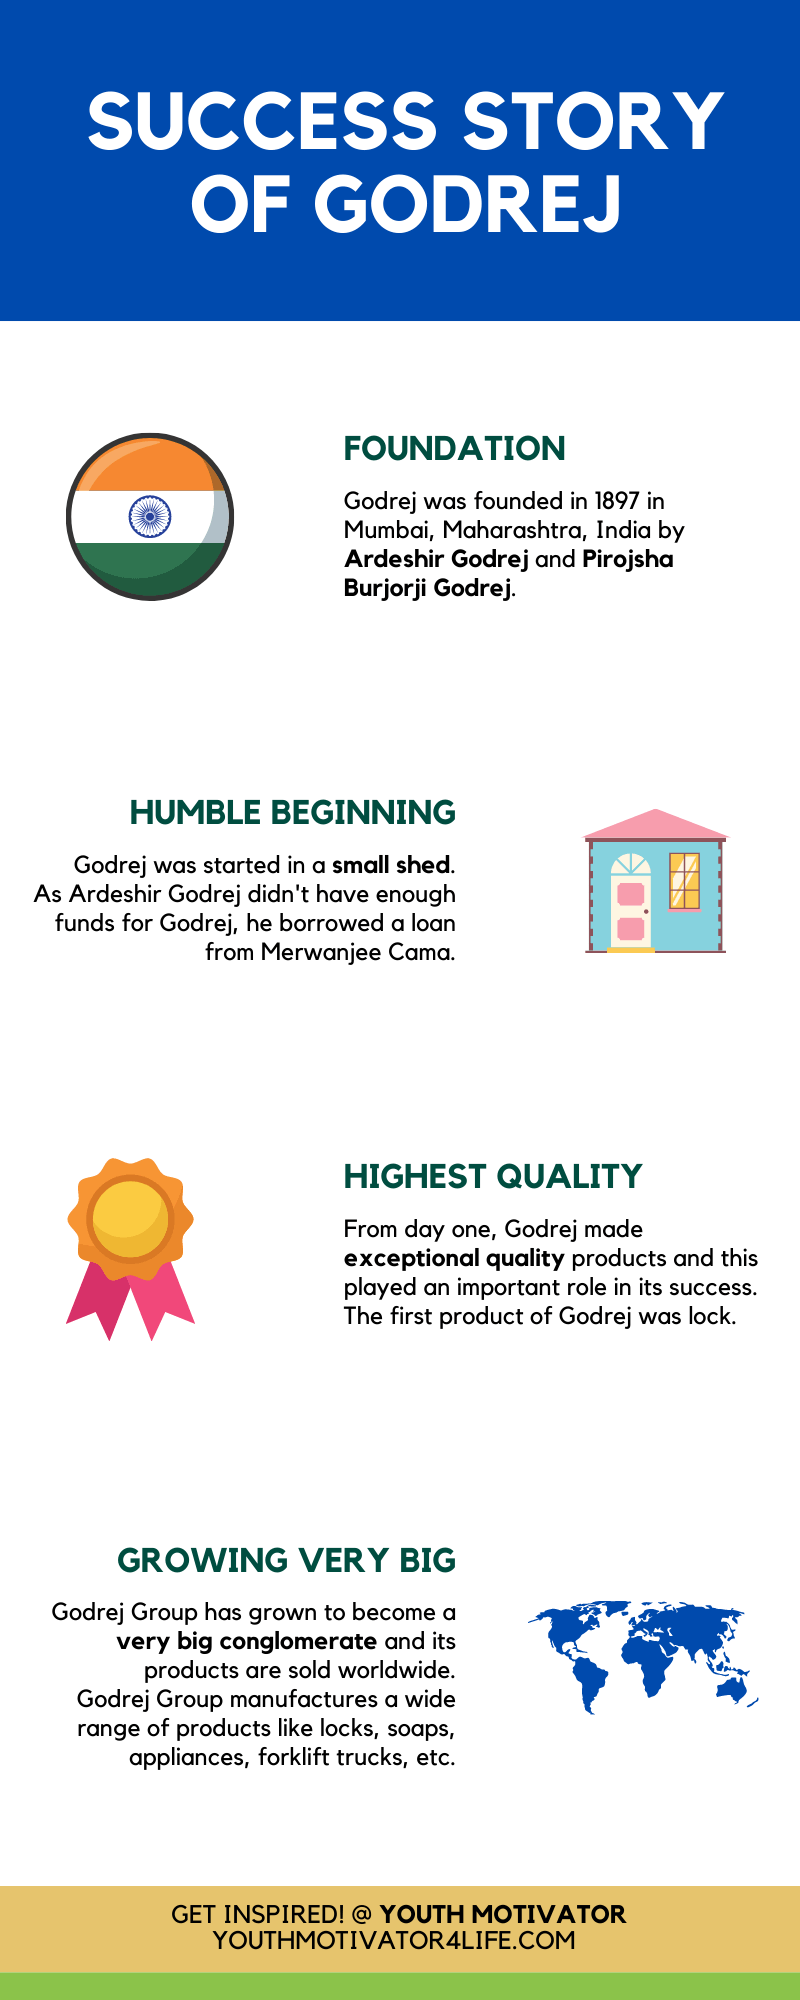 An infographic on success story of Godrej